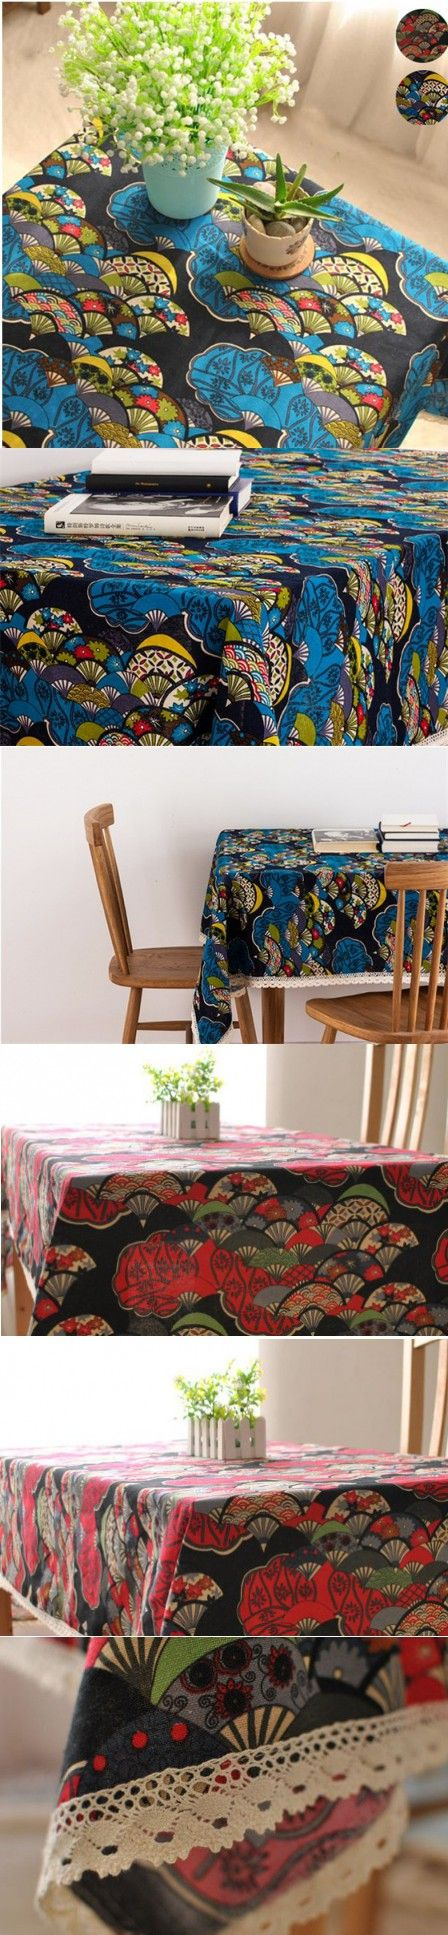 The 25 Best Ideas About Dining Table Cloth On Pinterest Rustic .